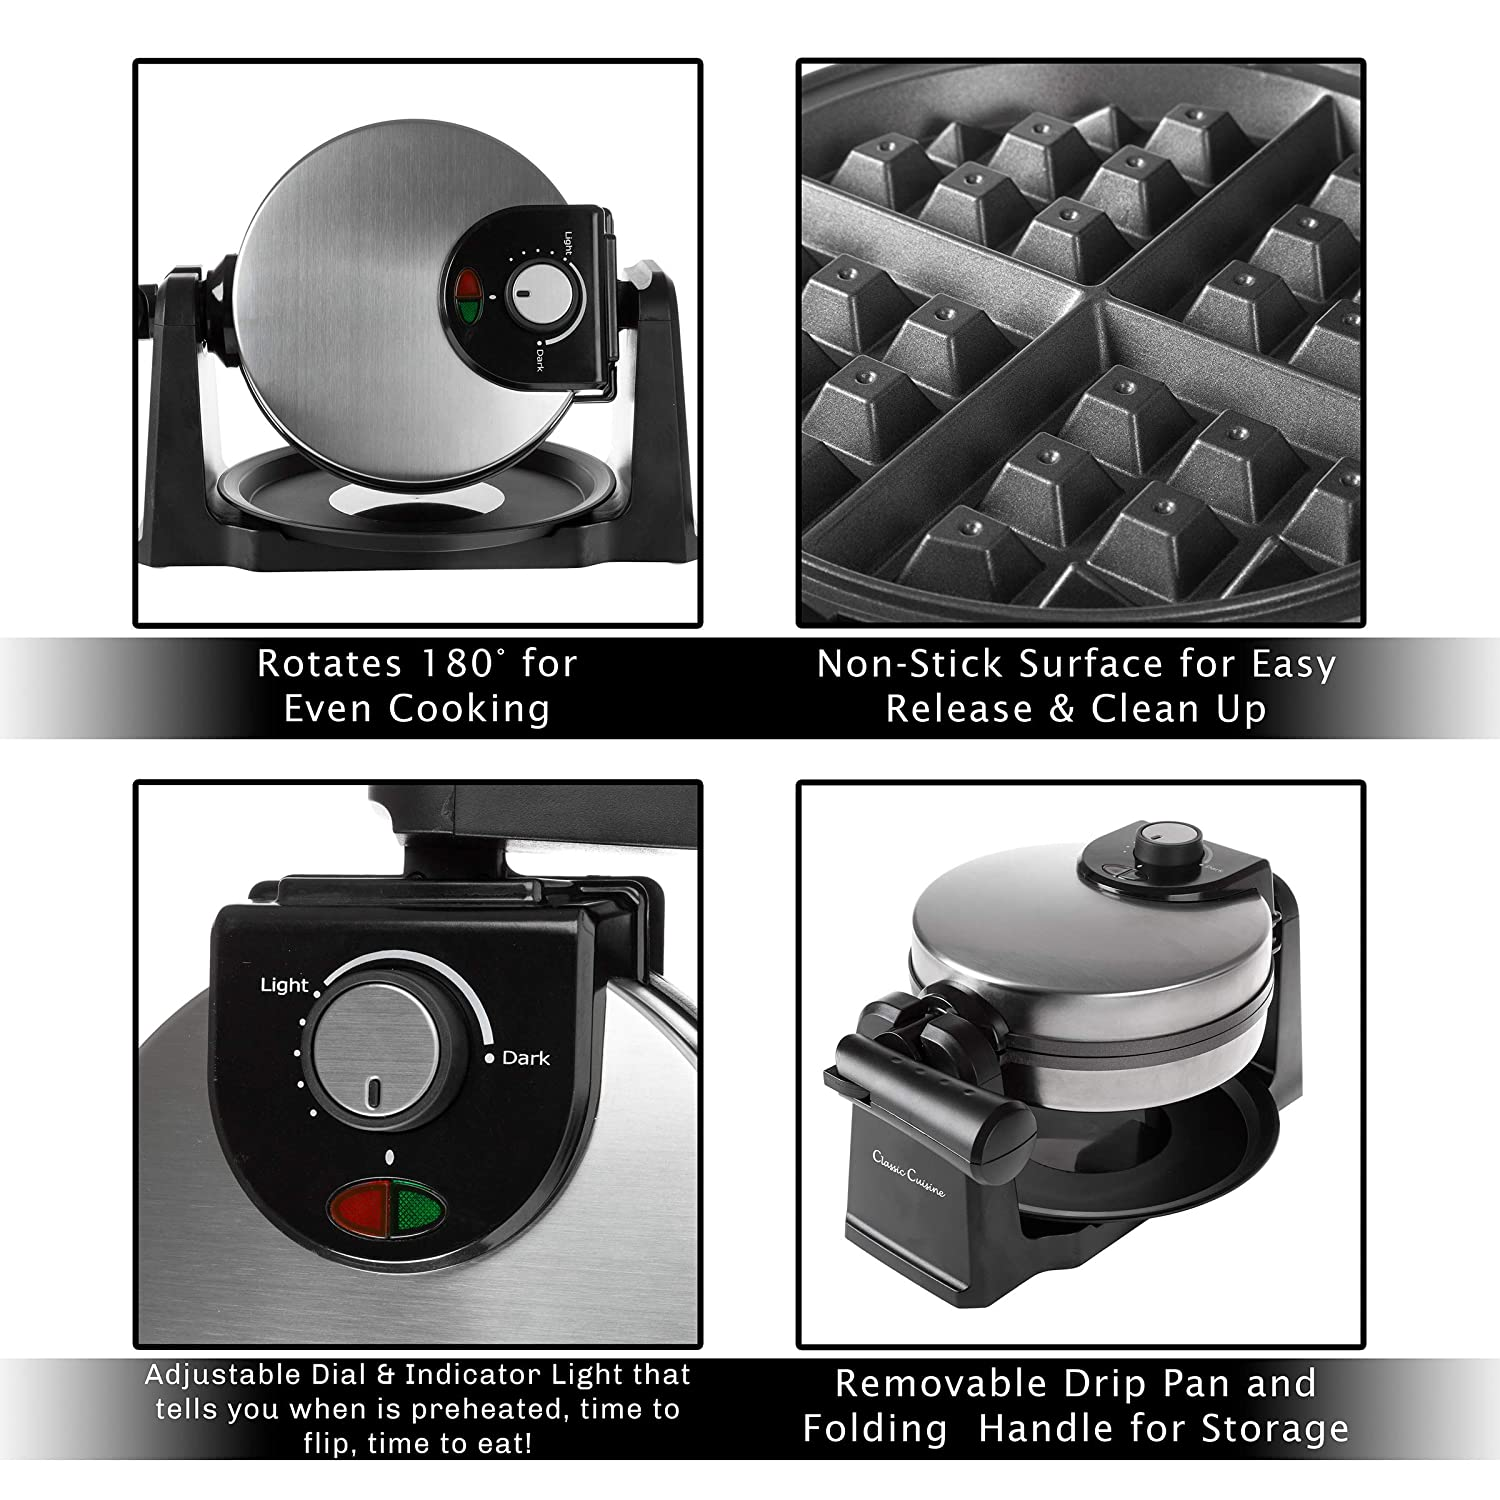 Classic Cuisine 82-KIT1119 Iron-Classic 180 Rotation Flip Waffle Maker with Nonstick Plates, Removable Drip Pan, Folding Handle-Kitchen Accessories